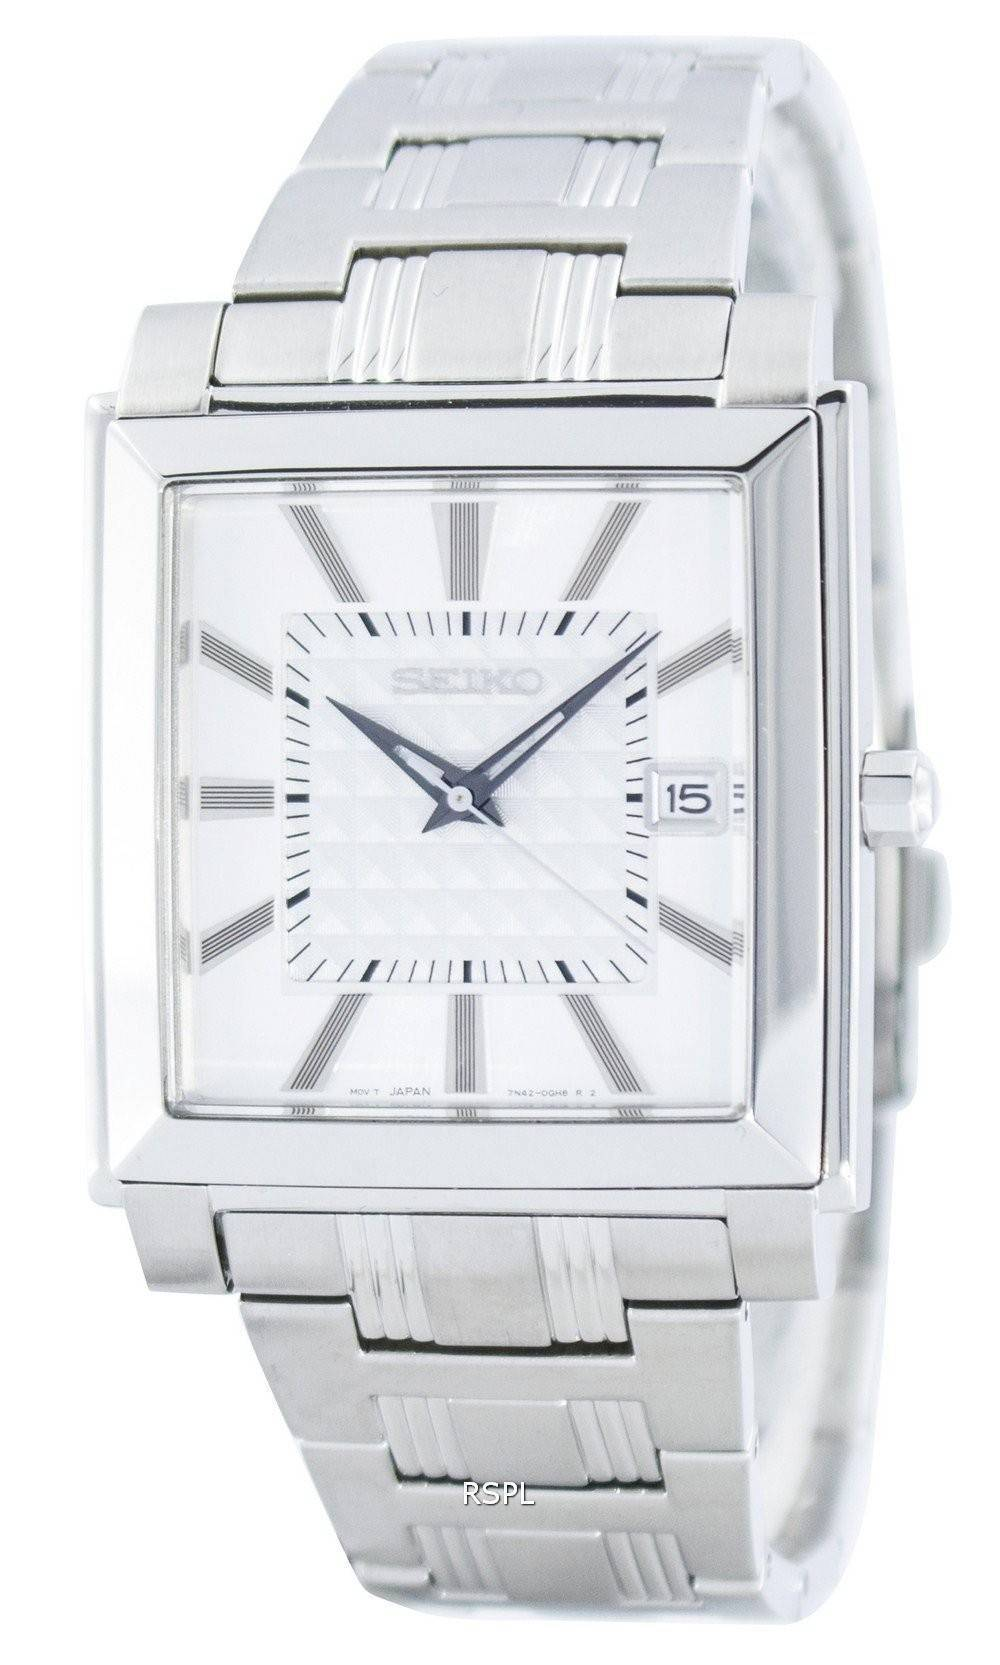 Maserati For Sale >> Seiko Quartz Square Shape SGEE03 SGEE03P1 SGEE03P Men's Watch - CityWatches.co.nz